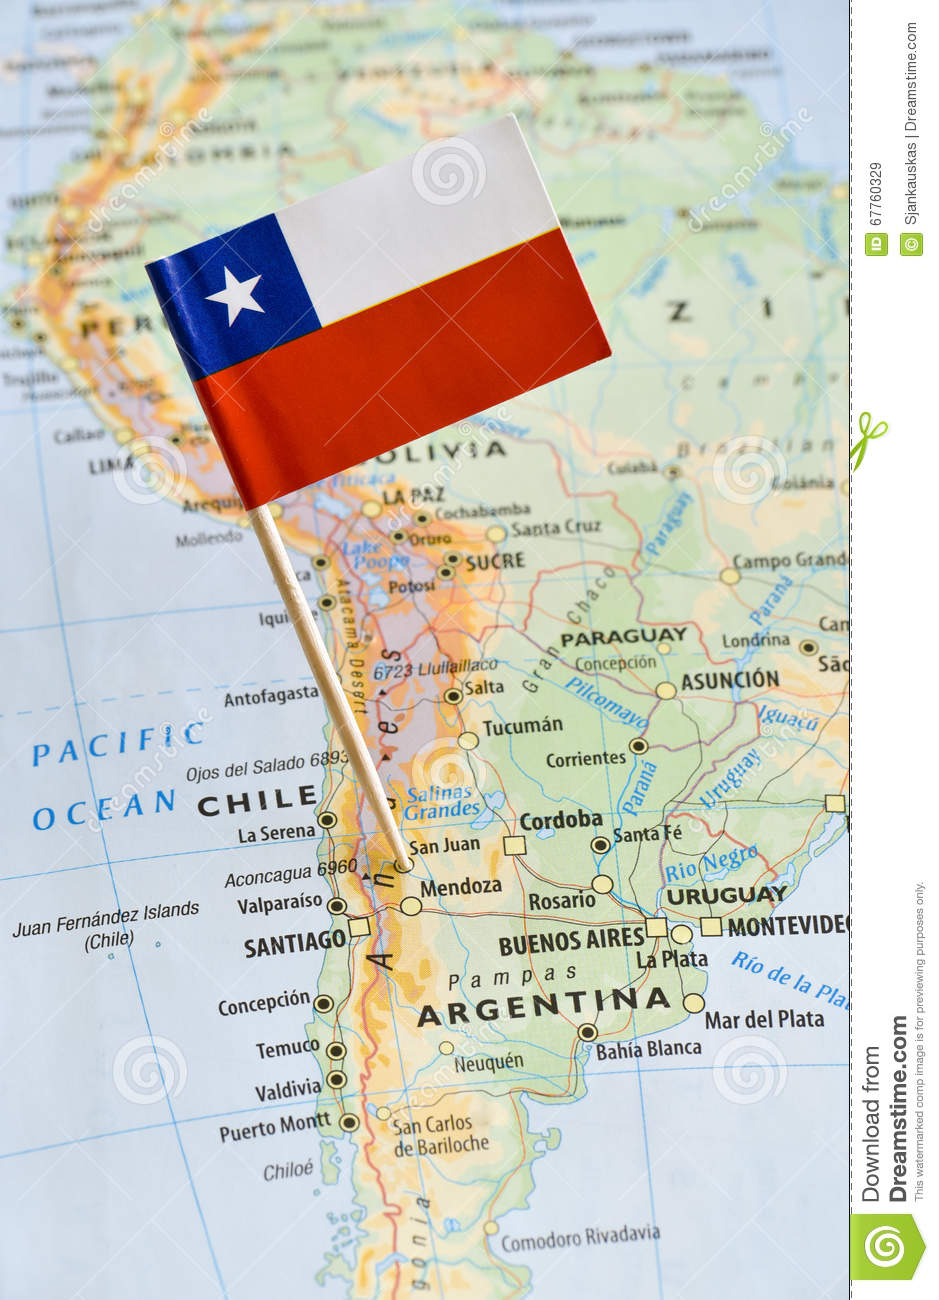 essays on the chilean economy Chilean troops make arrests during the military coup that overthrew  more if necessary/ best men we have/ game plan/ make the economy scream /48 hours for plan.